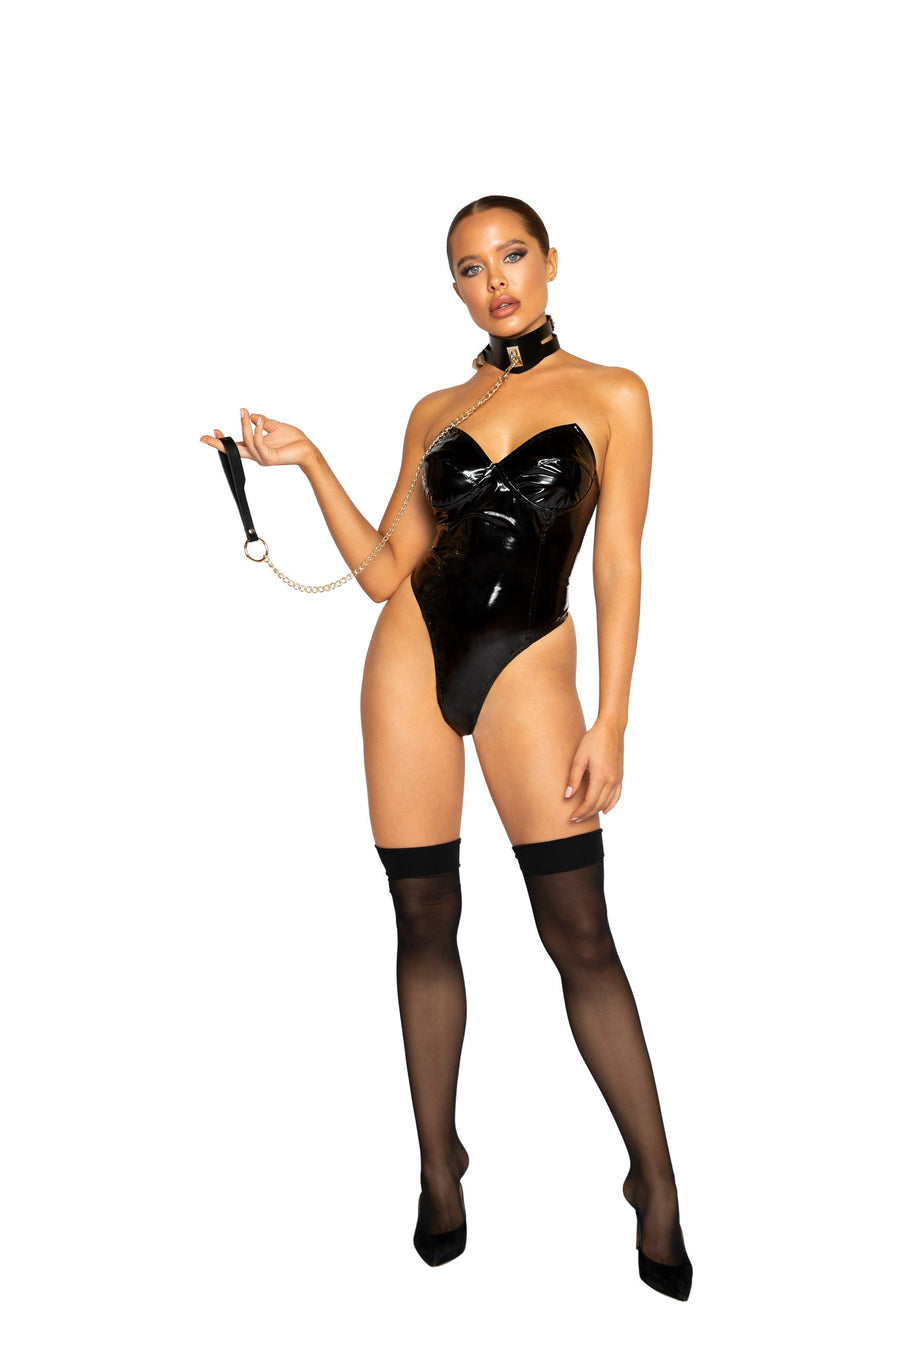 Roma Confidential LI363 High Cut Vinyl Bodysuit Fetish Style High Cut Strapless Vinyl Bodysuit with Thong Style Back and Zipper Closure